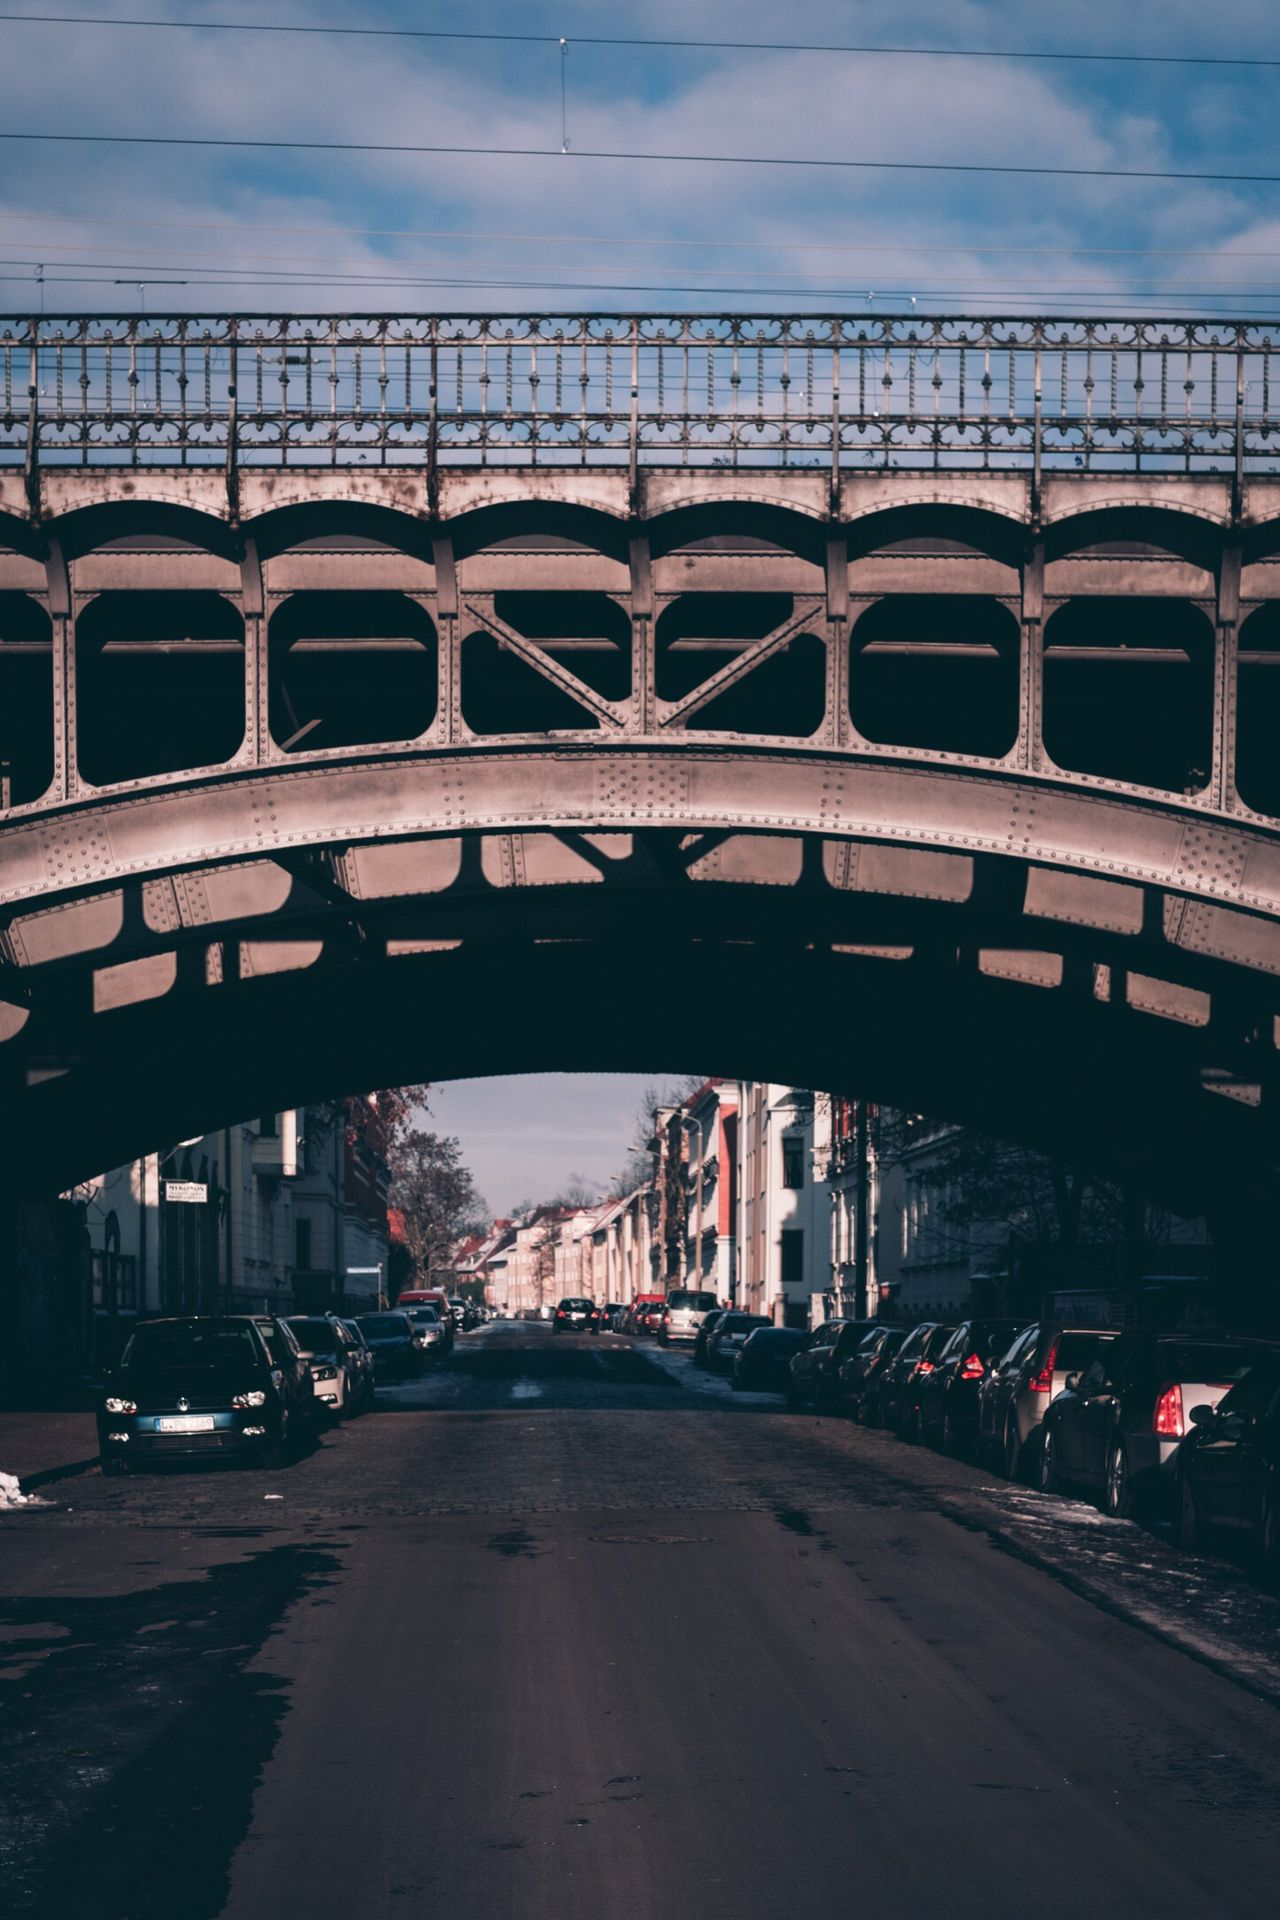 Adapted To The City Architecture Built Structure City Transportation Car Building Exterior Outdoors Bridge - Man Made Structure Travel Destinations Road Land Vehicle Sky Arch Day People